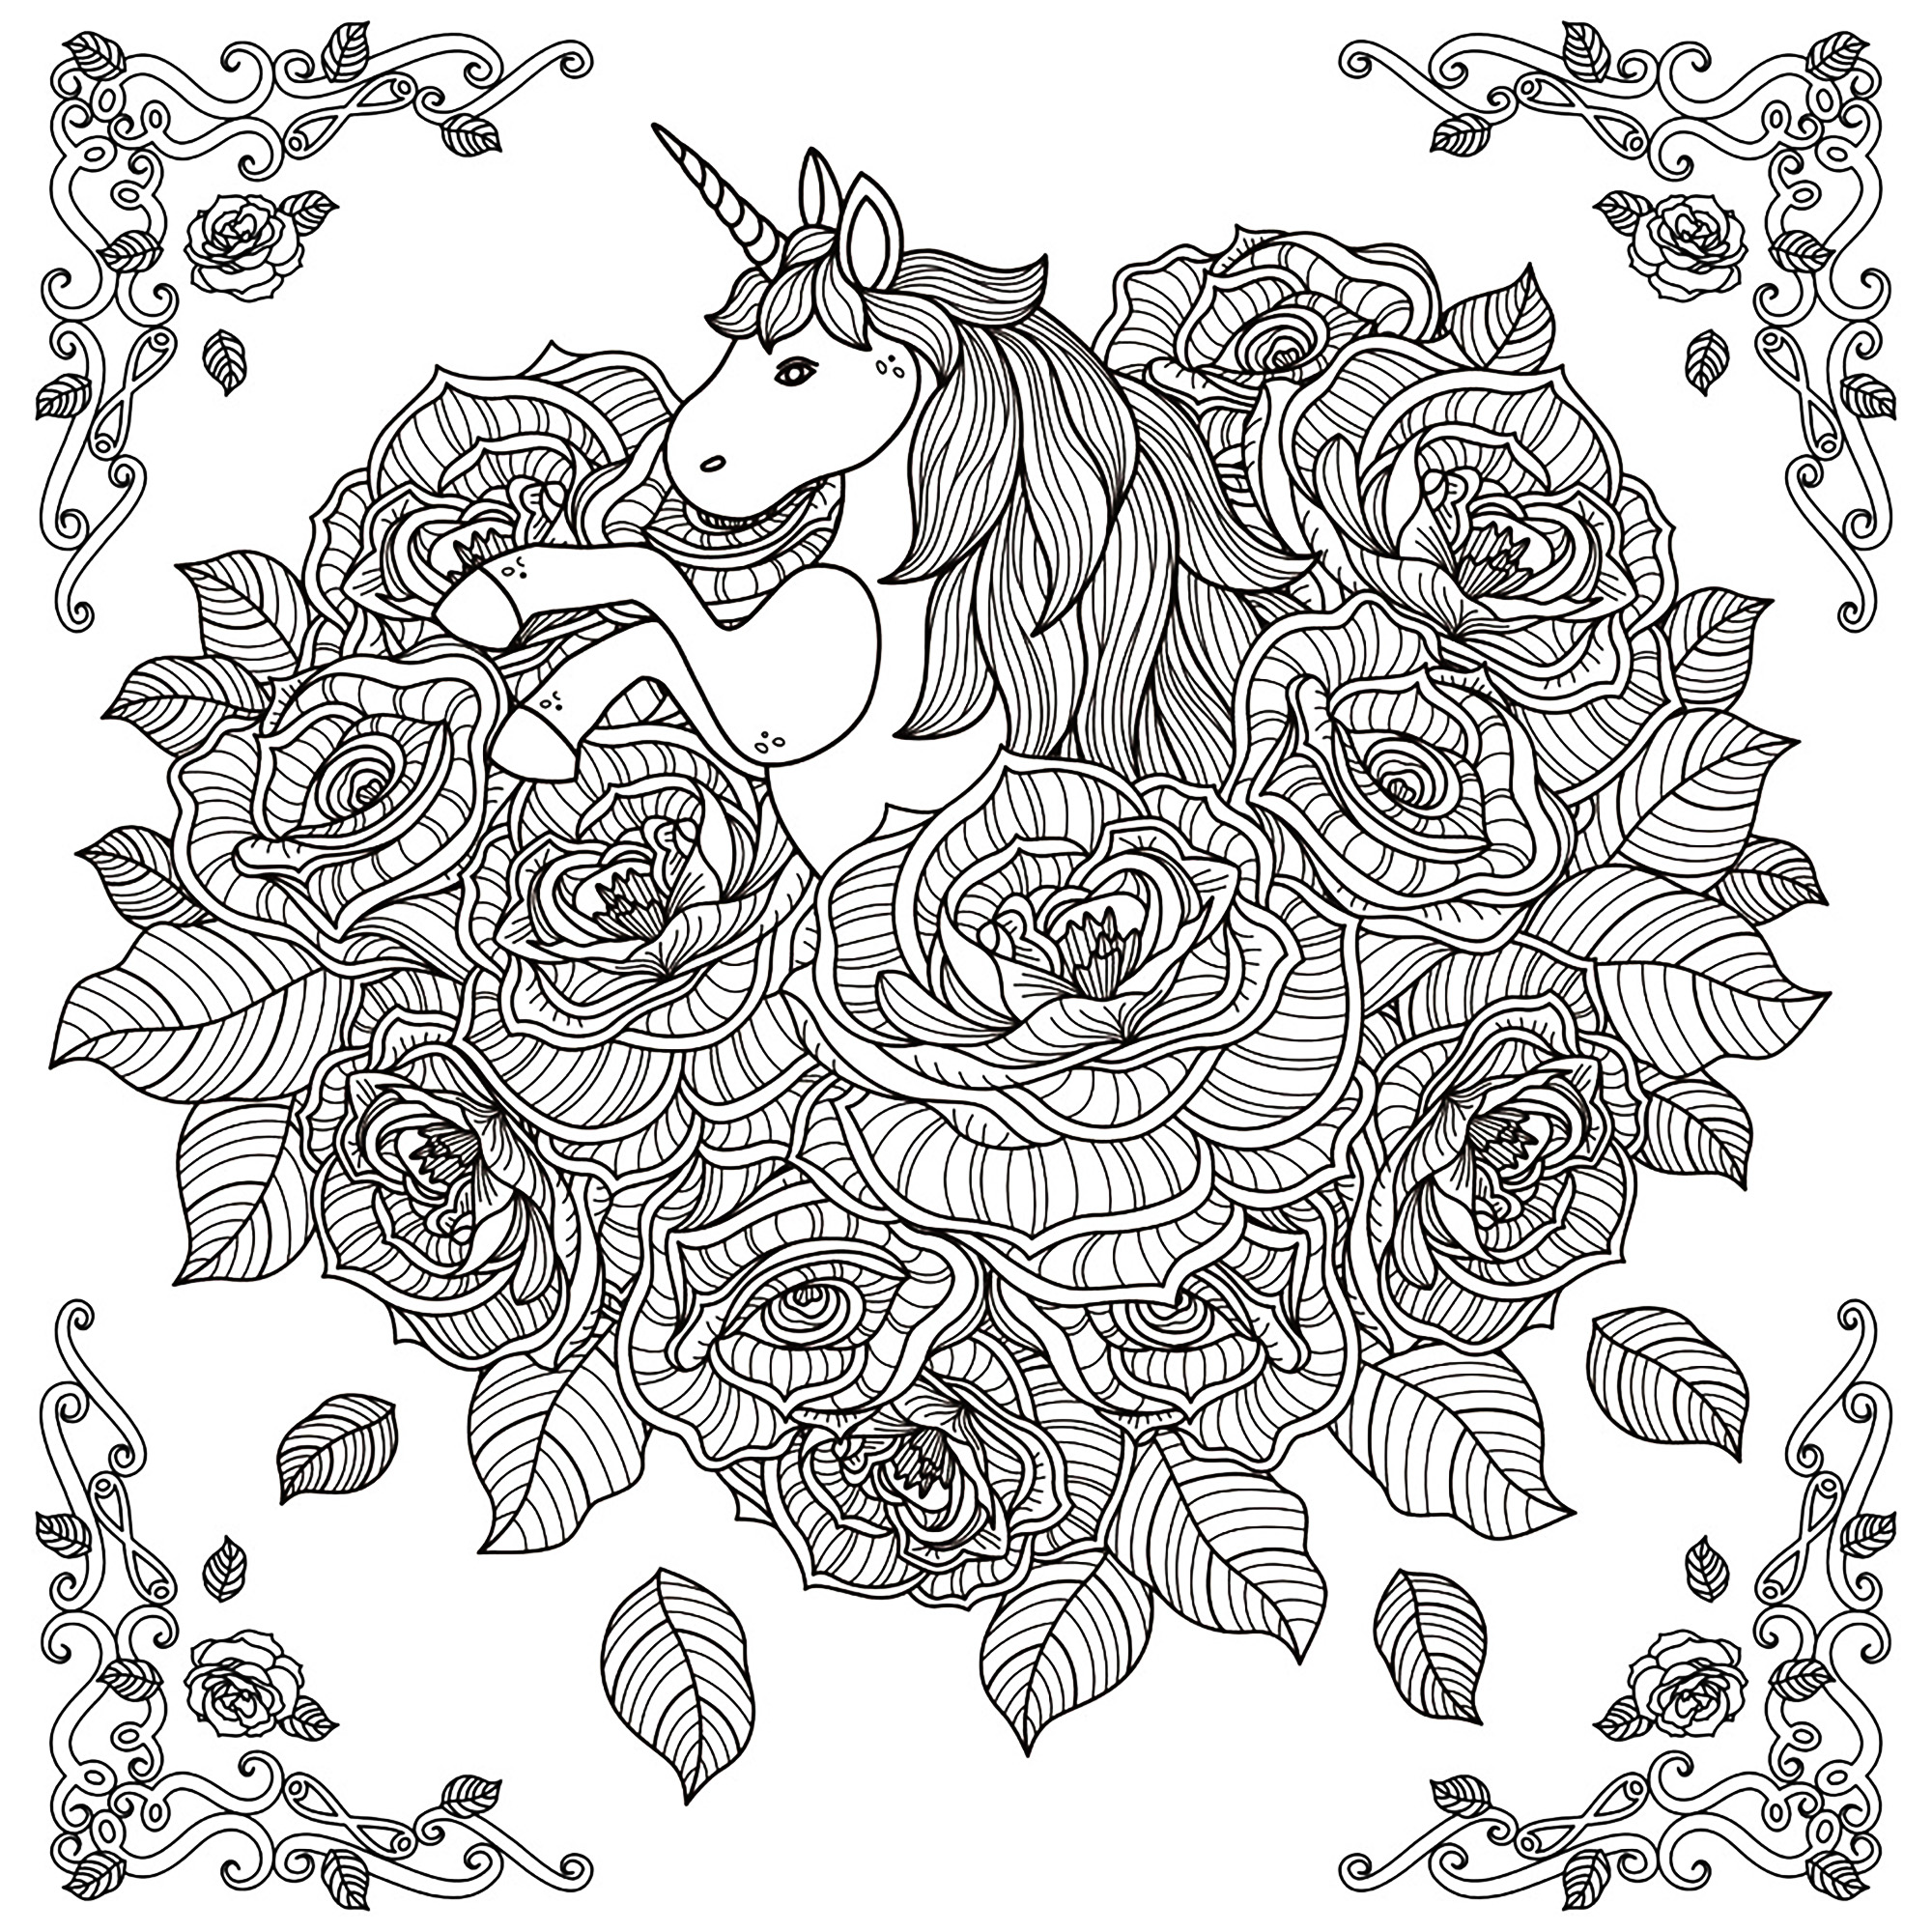 Coloring Pages For Adults Unicorns - Black and white pattern for coloring book for adults with adorable unicorn and roses background